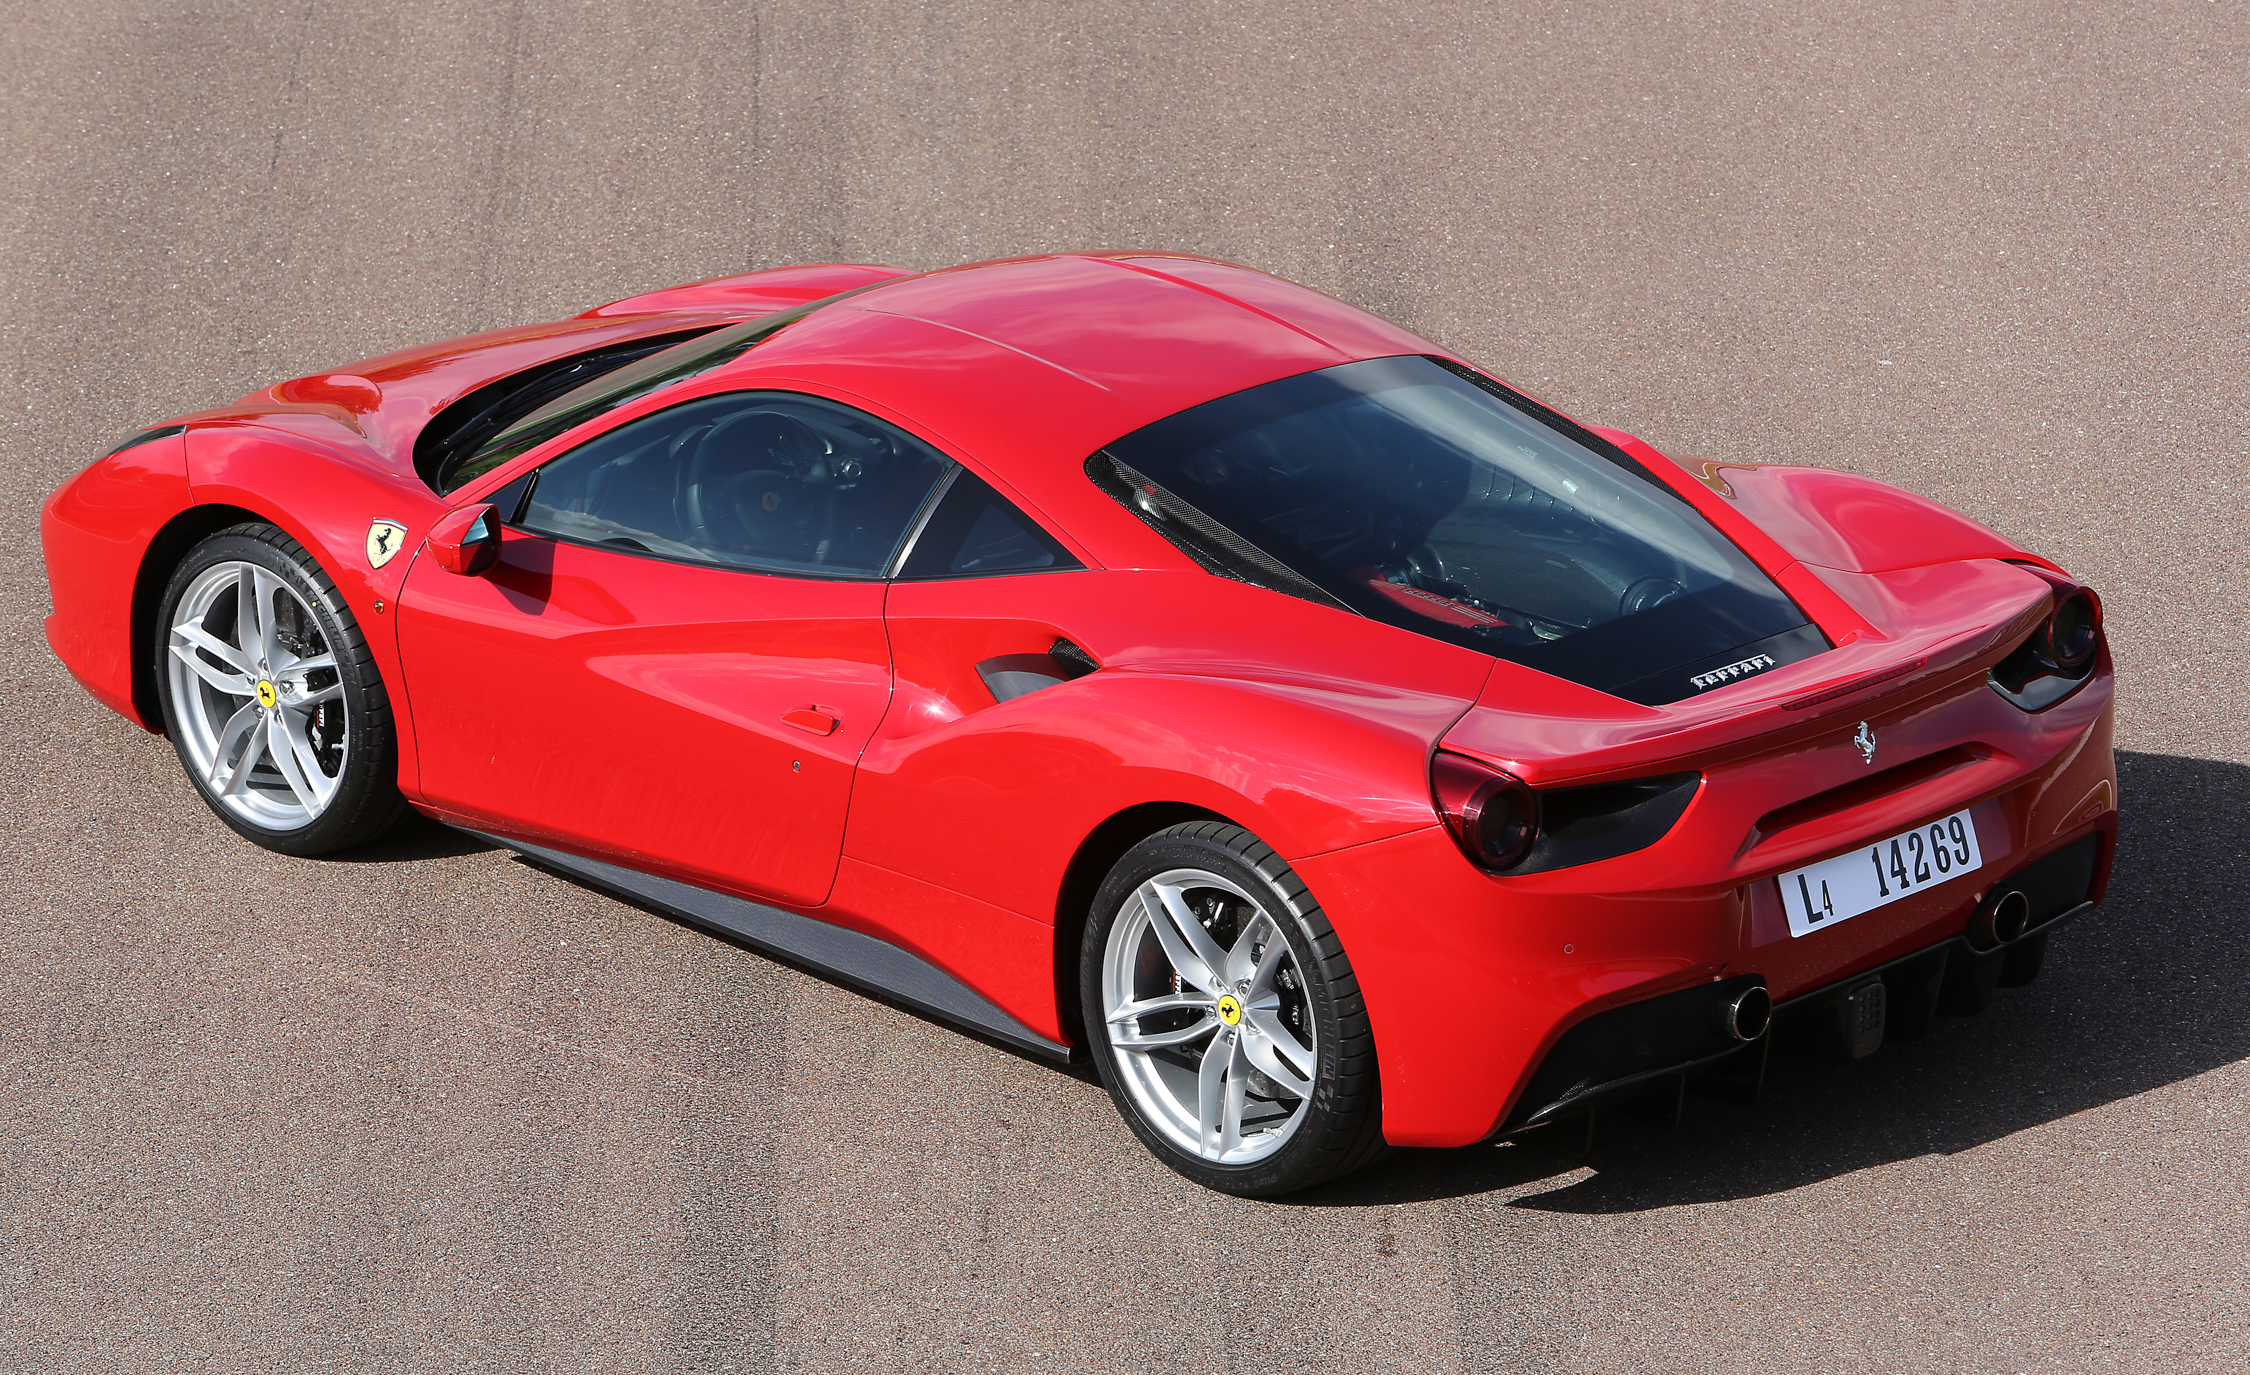 2016 Ferrari 488GTB Exterior Full Side and Rear